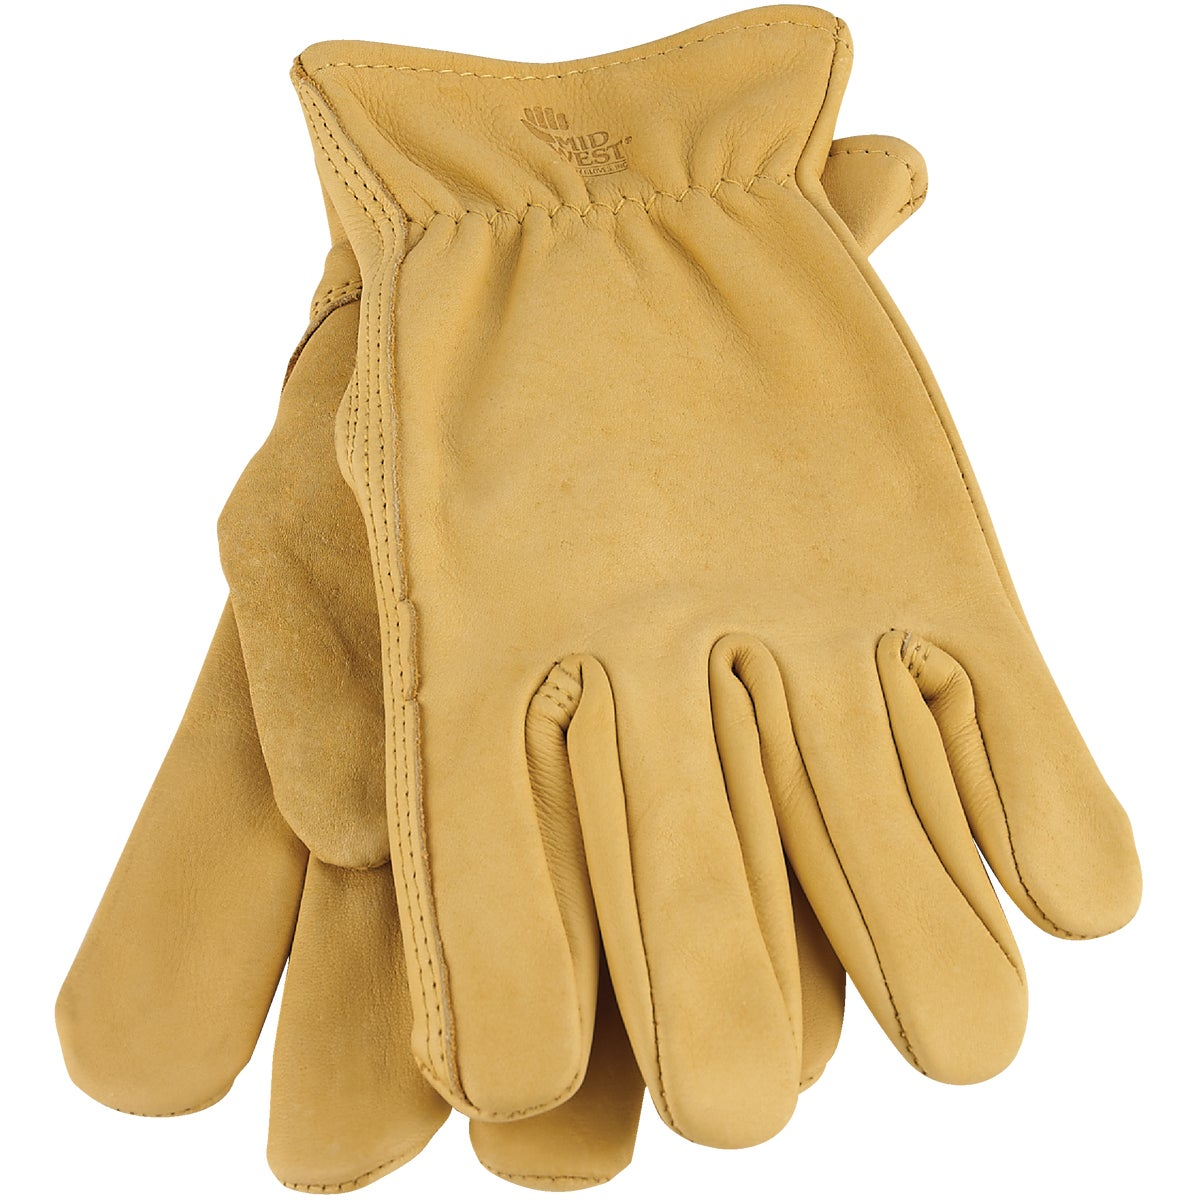 XL LEATHER GLOVE